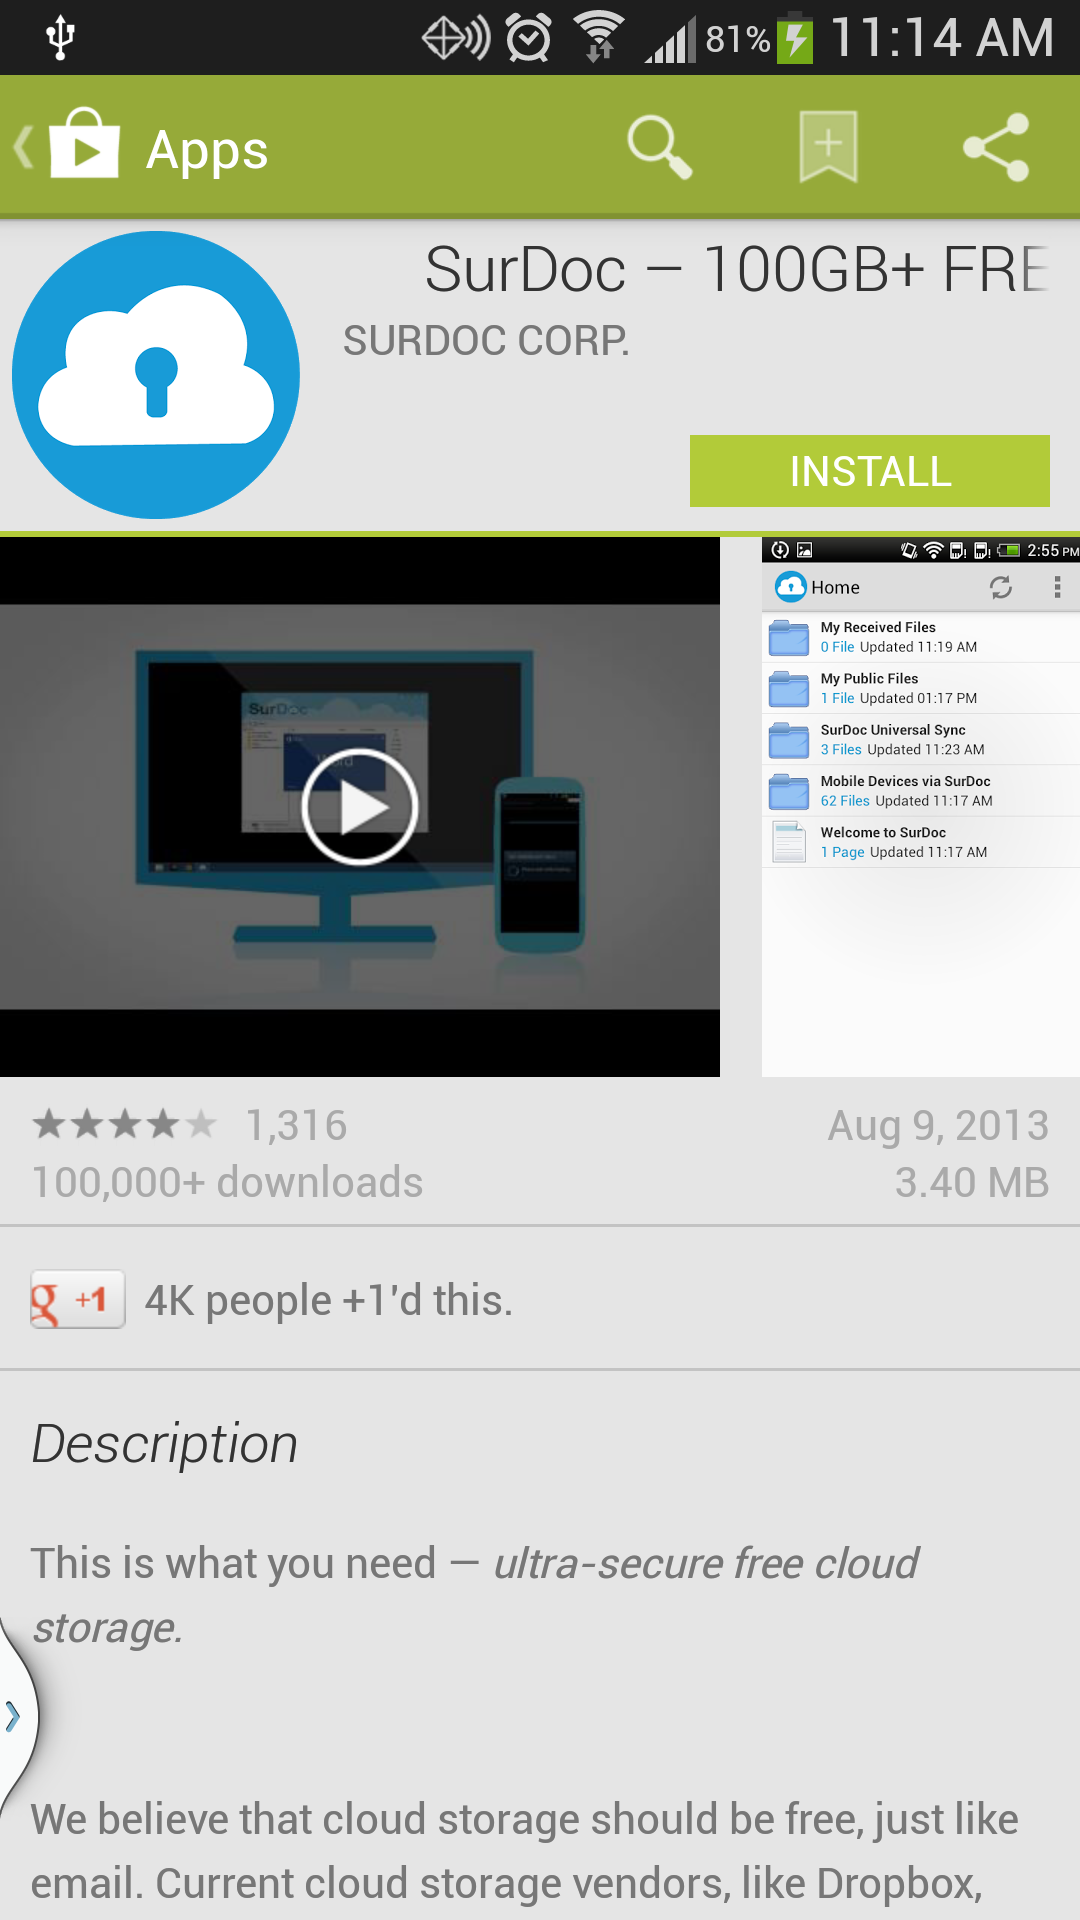 Download SurDoc for your Galaxy S4